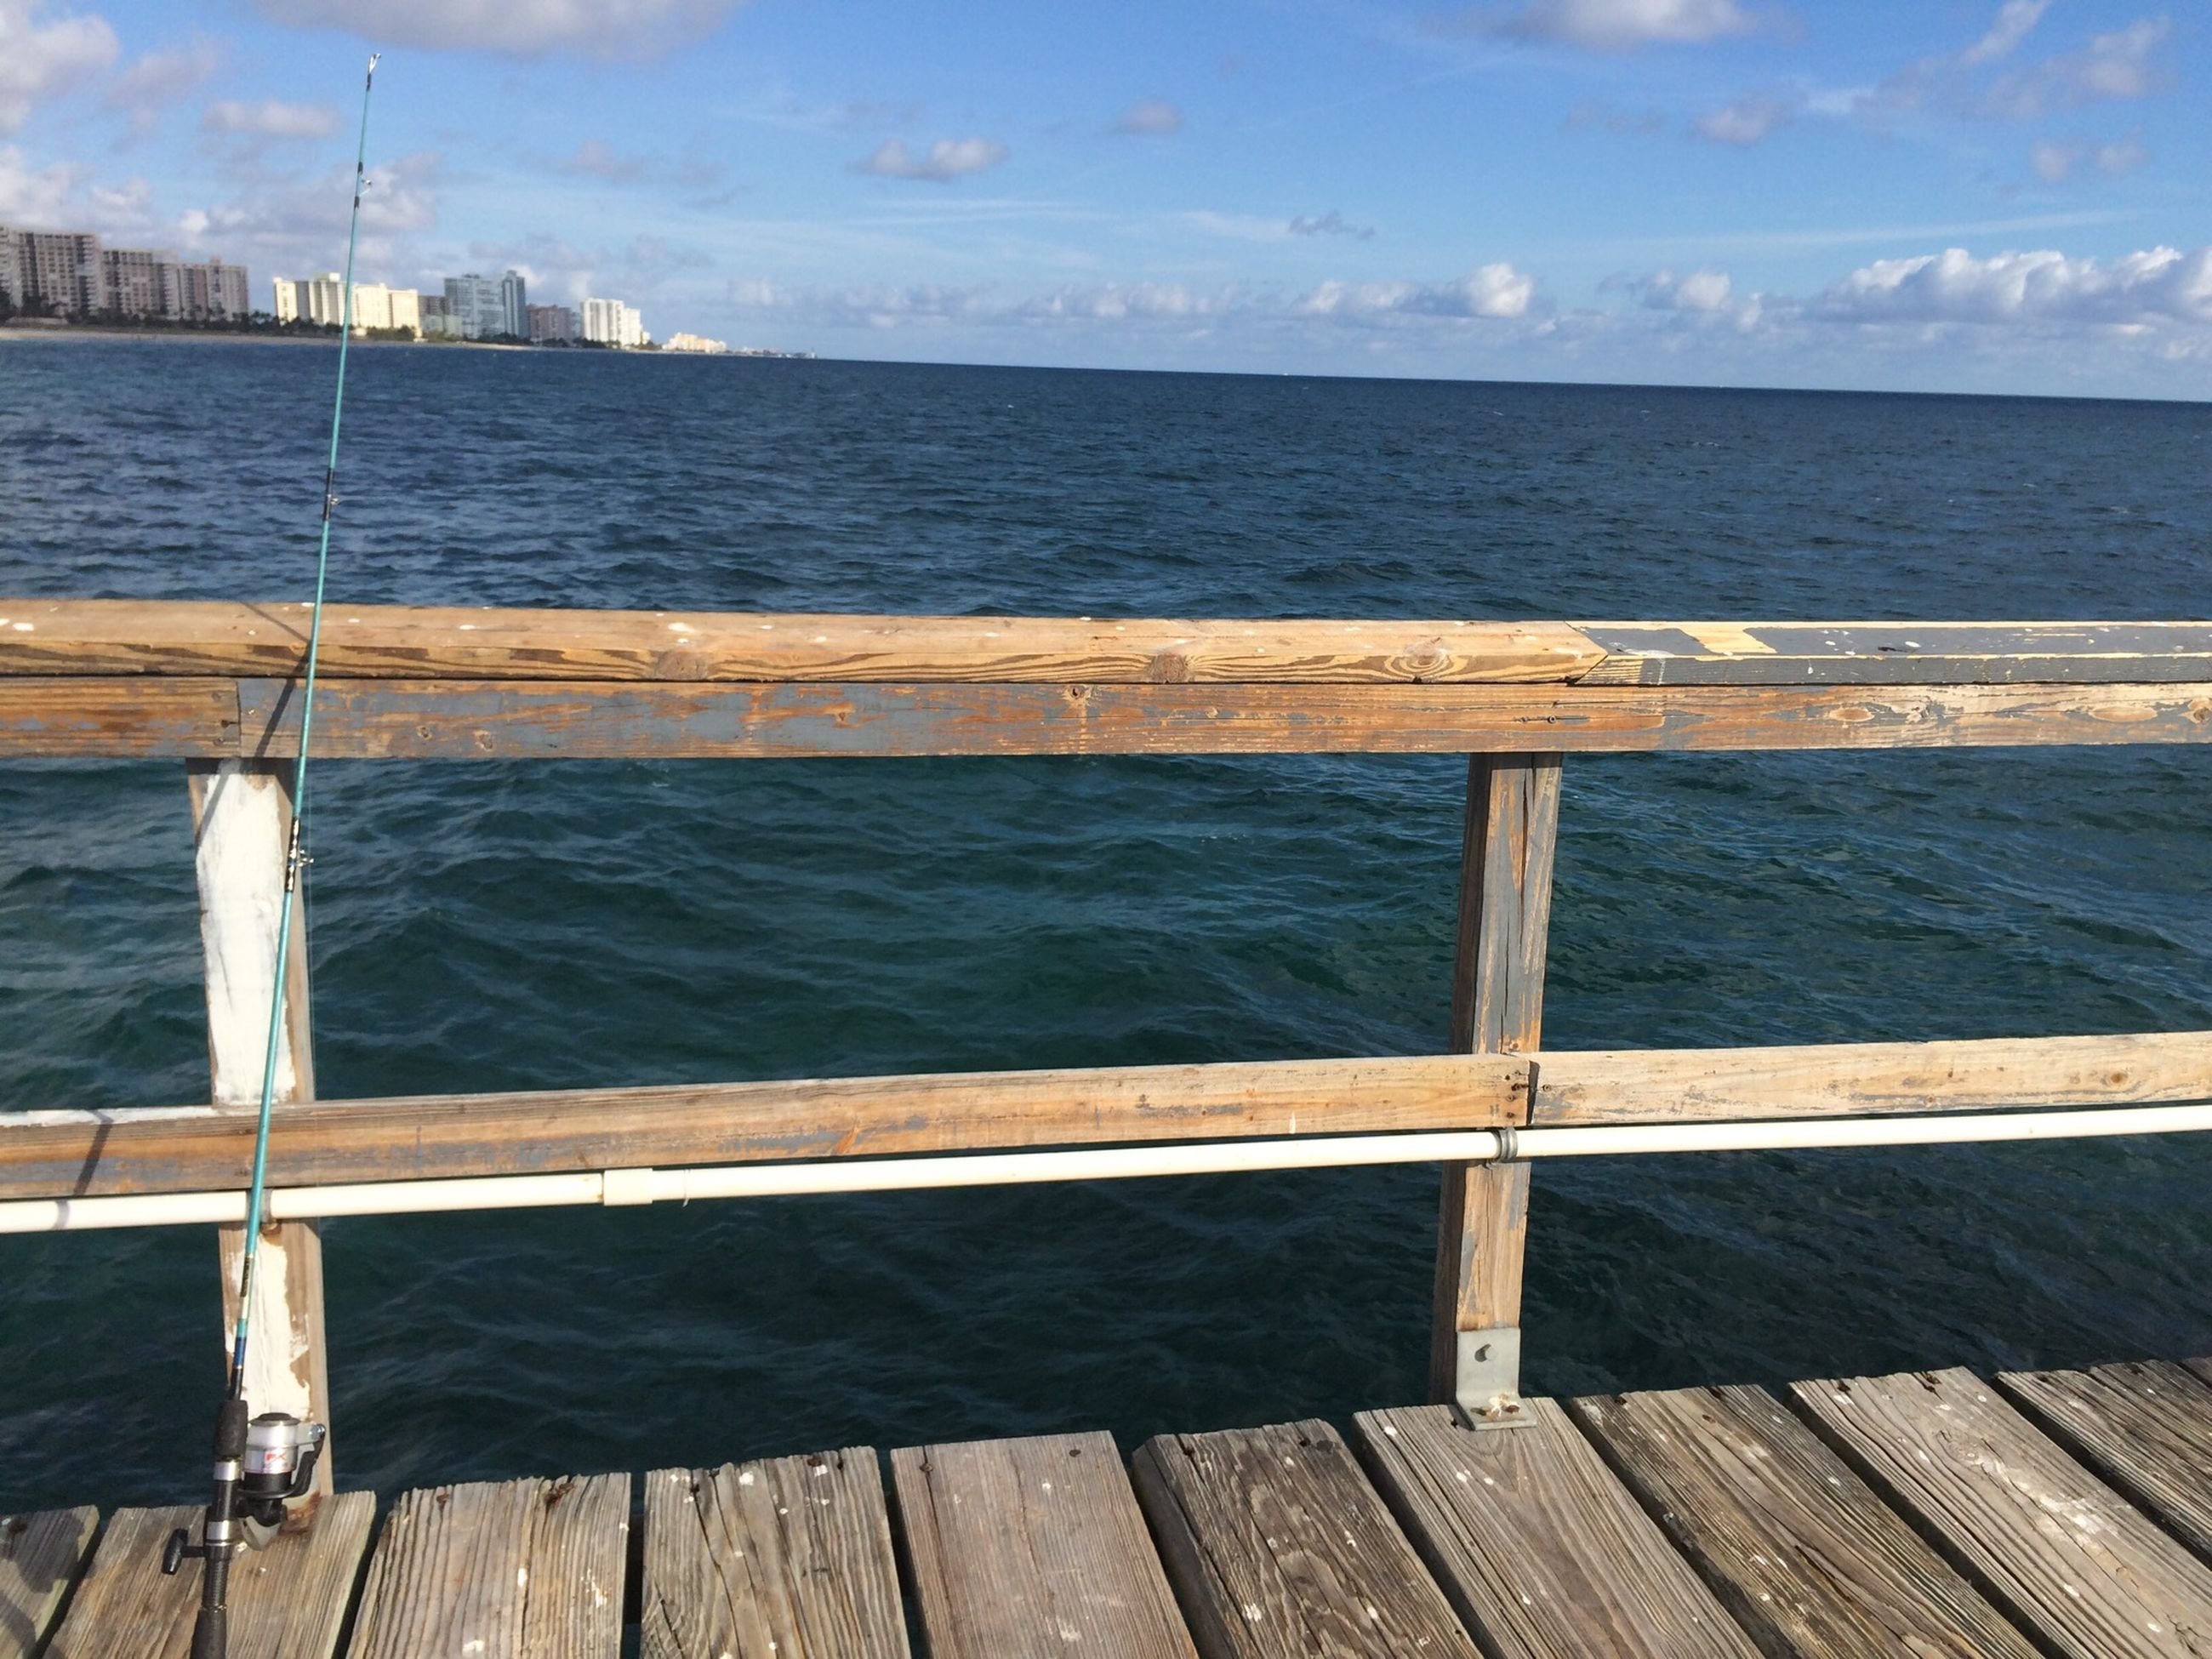 water, sea, pier, railing, sky, wood - material, tranquil scene, tranquility, horizon over water, jetty, rippled, scenics, nature, wood, beauty in nature, wooden, day, idyllic, ocean, outdoors